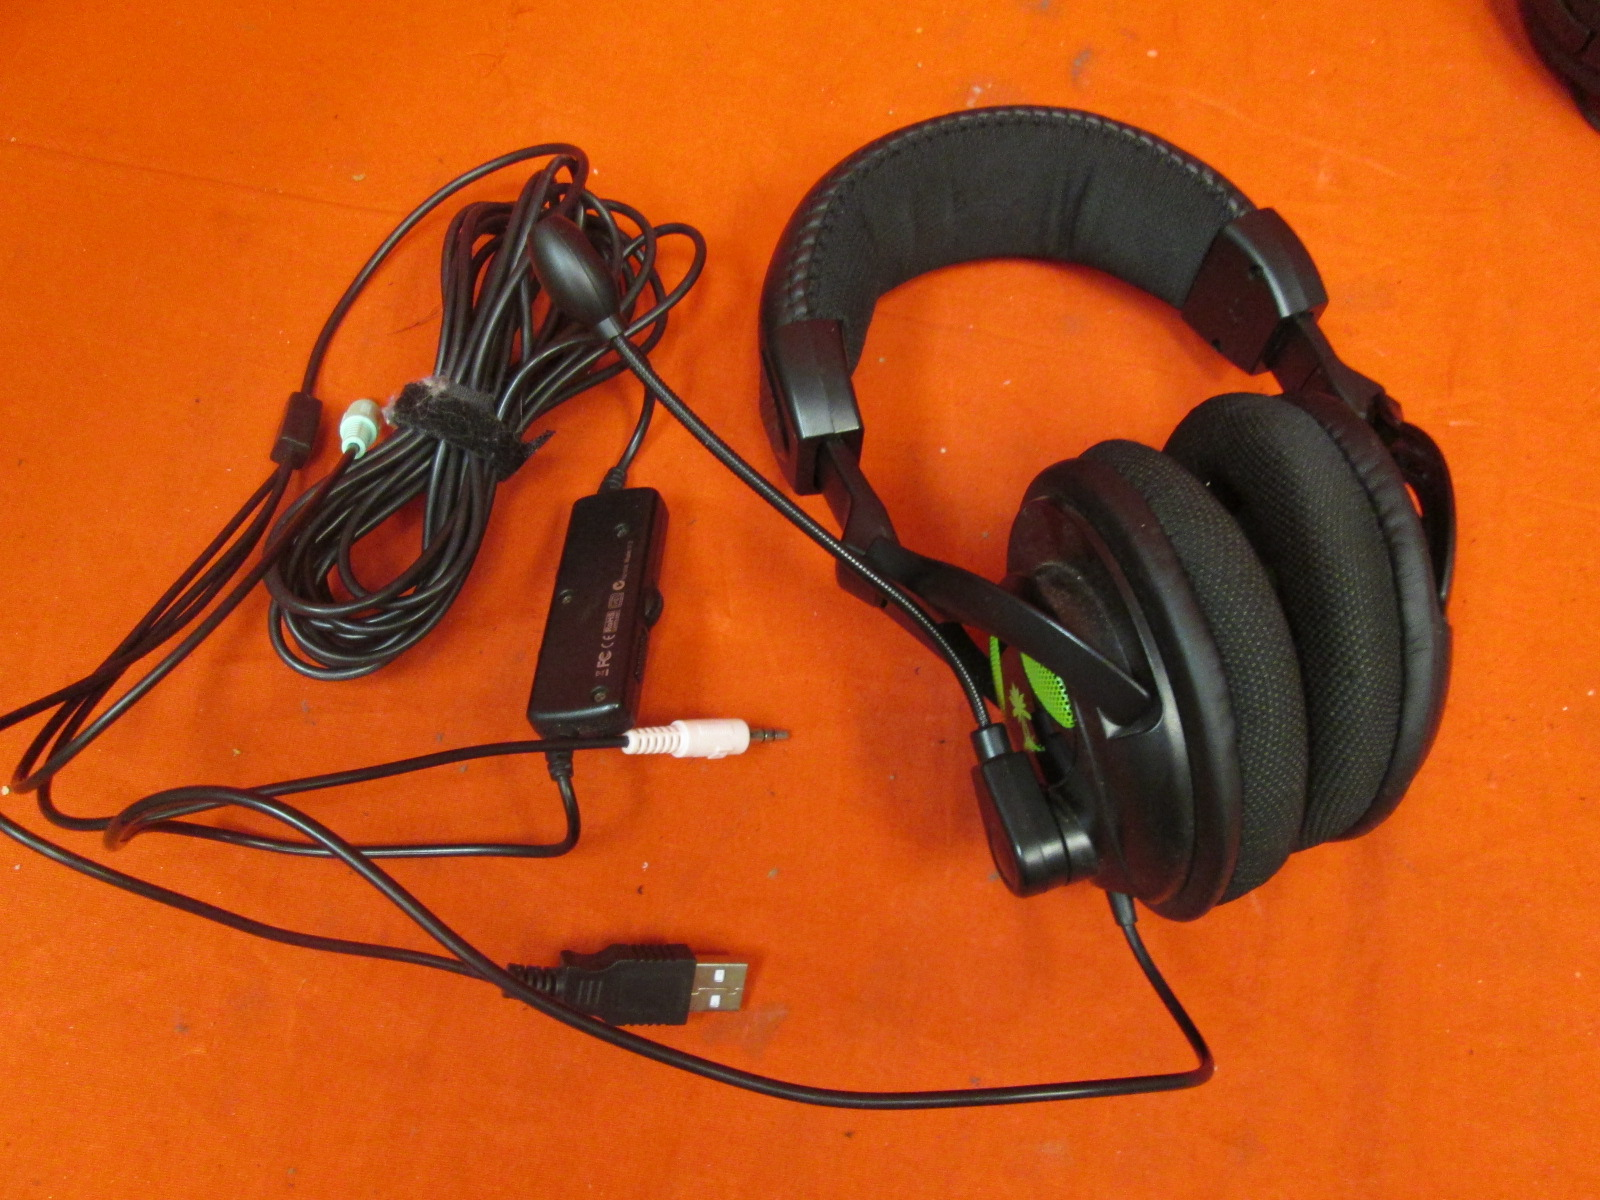 Turtle Beach Ear Force X12 Amplified Stereo Gaming Headset For Xbox 36